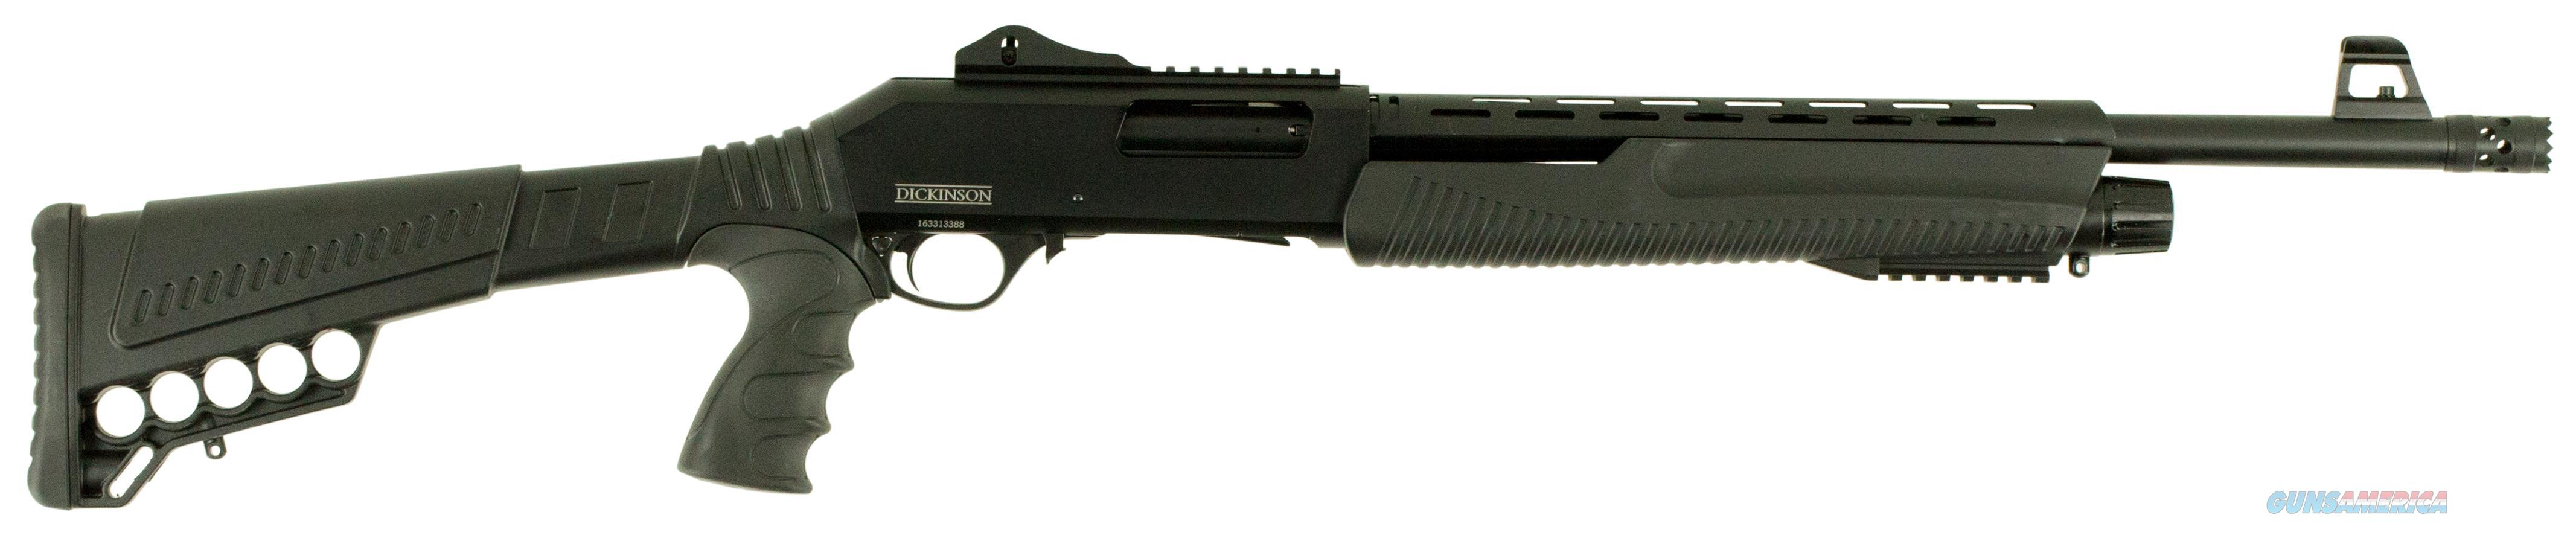 "Dickinson Xx3d2 Defense Pump 12 Gauge 18.5"" 3"" 5+1 Synthetic Black XX3D2  Guns > Shotguns > D Misc Shotguns"